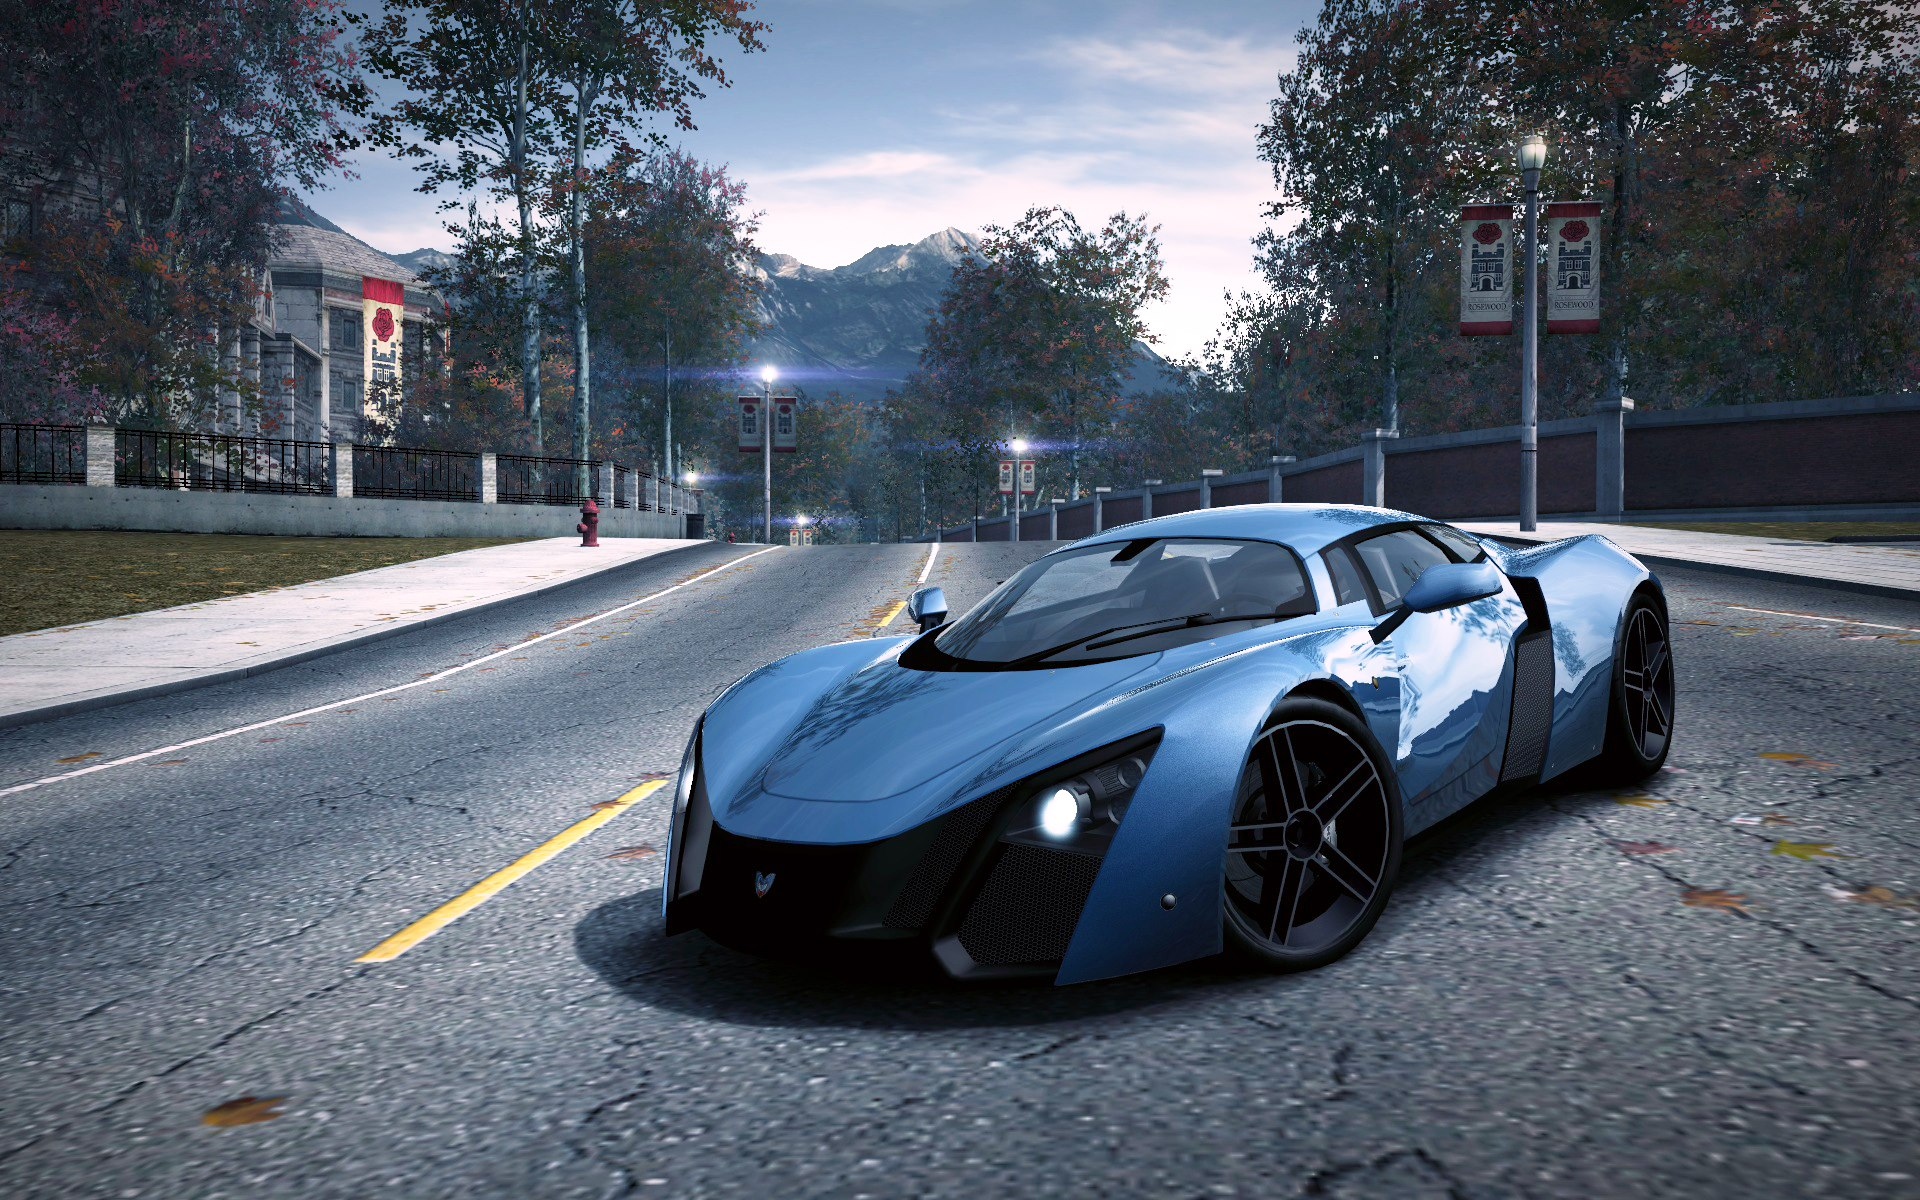 Marussia B2 | NFS World Wiki | FANDOM powered by Wikia